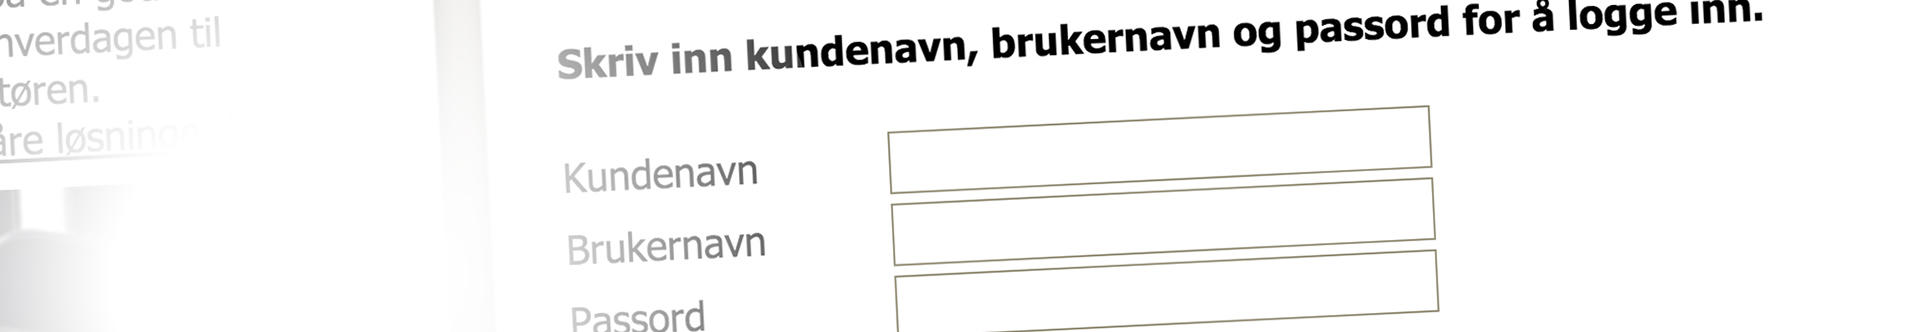 bilde som illustrerer login